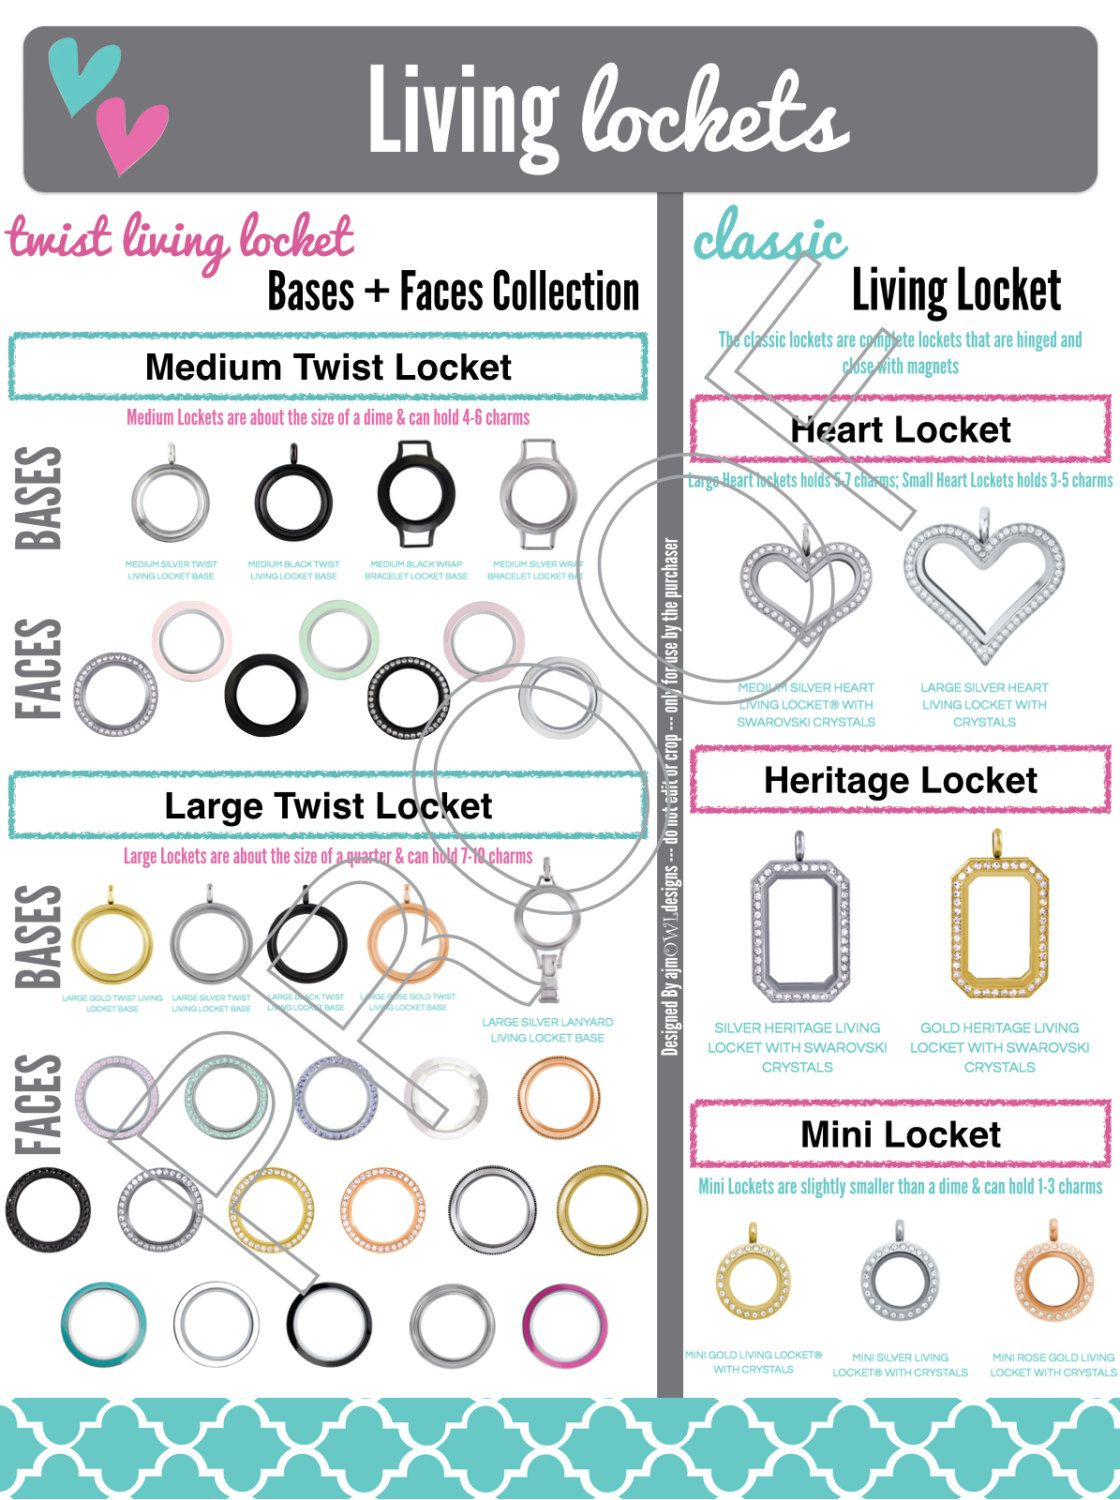 Living Lockets Collection Face Base Classic Jb Graphic Origami Owl Inspired Origami Owl Jewelry Origami Owl Origami Owl Designer